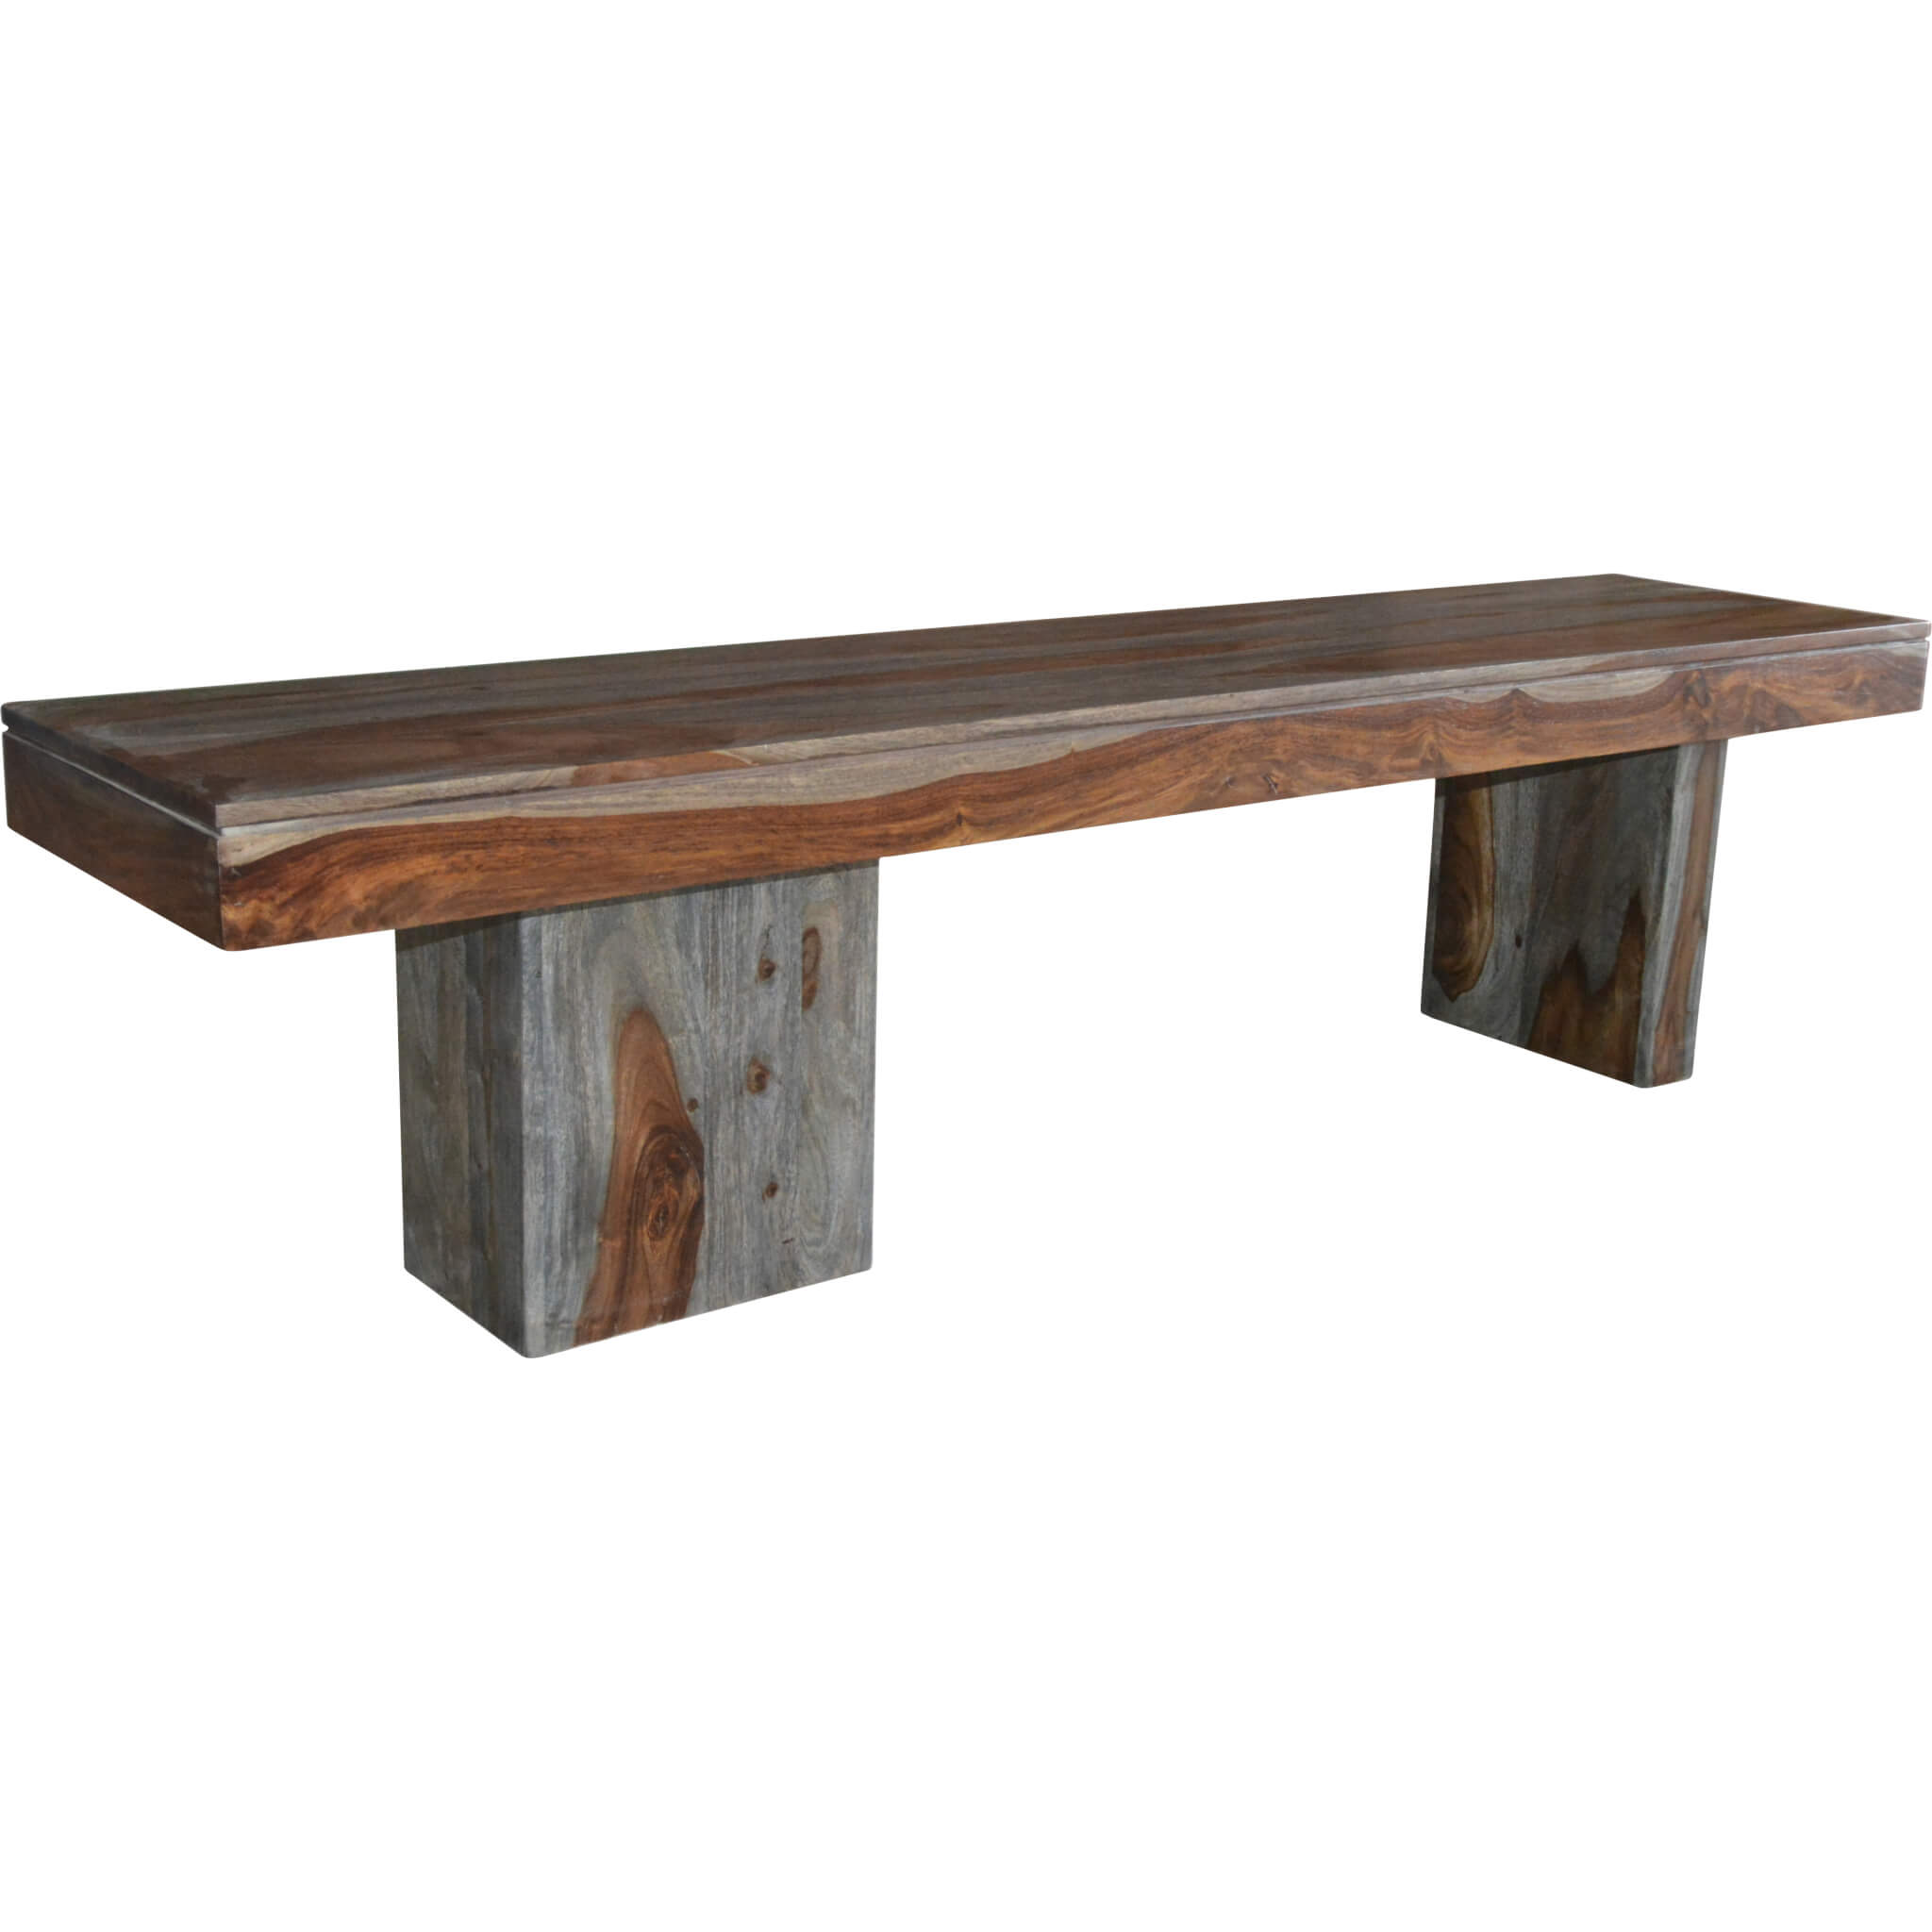 Sheesham Wash Wooden Bench